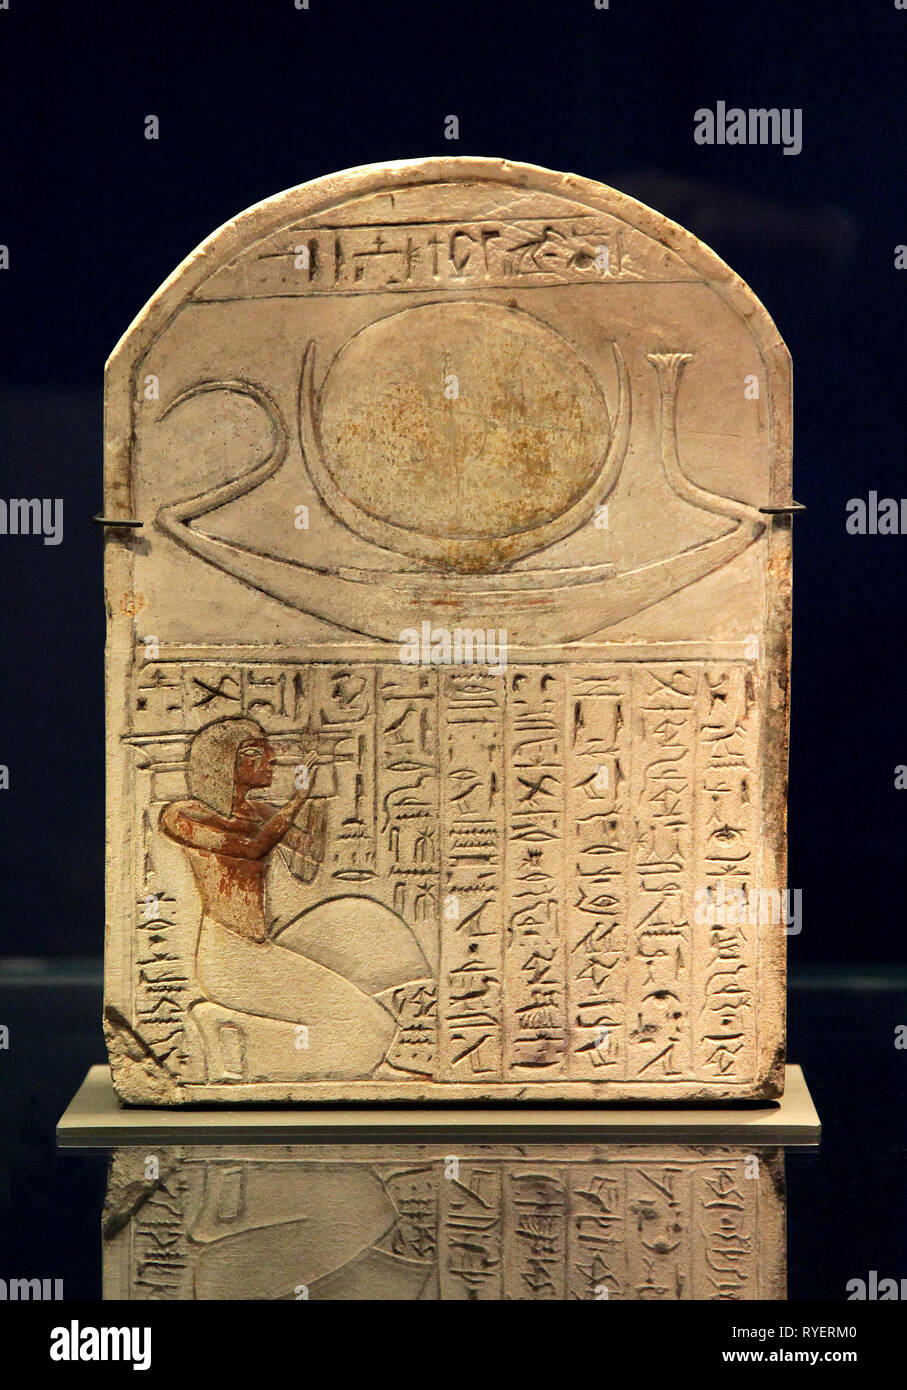 Thot and Hoey 1292-1191 bc.Gods of Egypt.Ancient Egyptian Pantheon.Gods and Goddesses of the Ancient Egyptians. - Stock Image